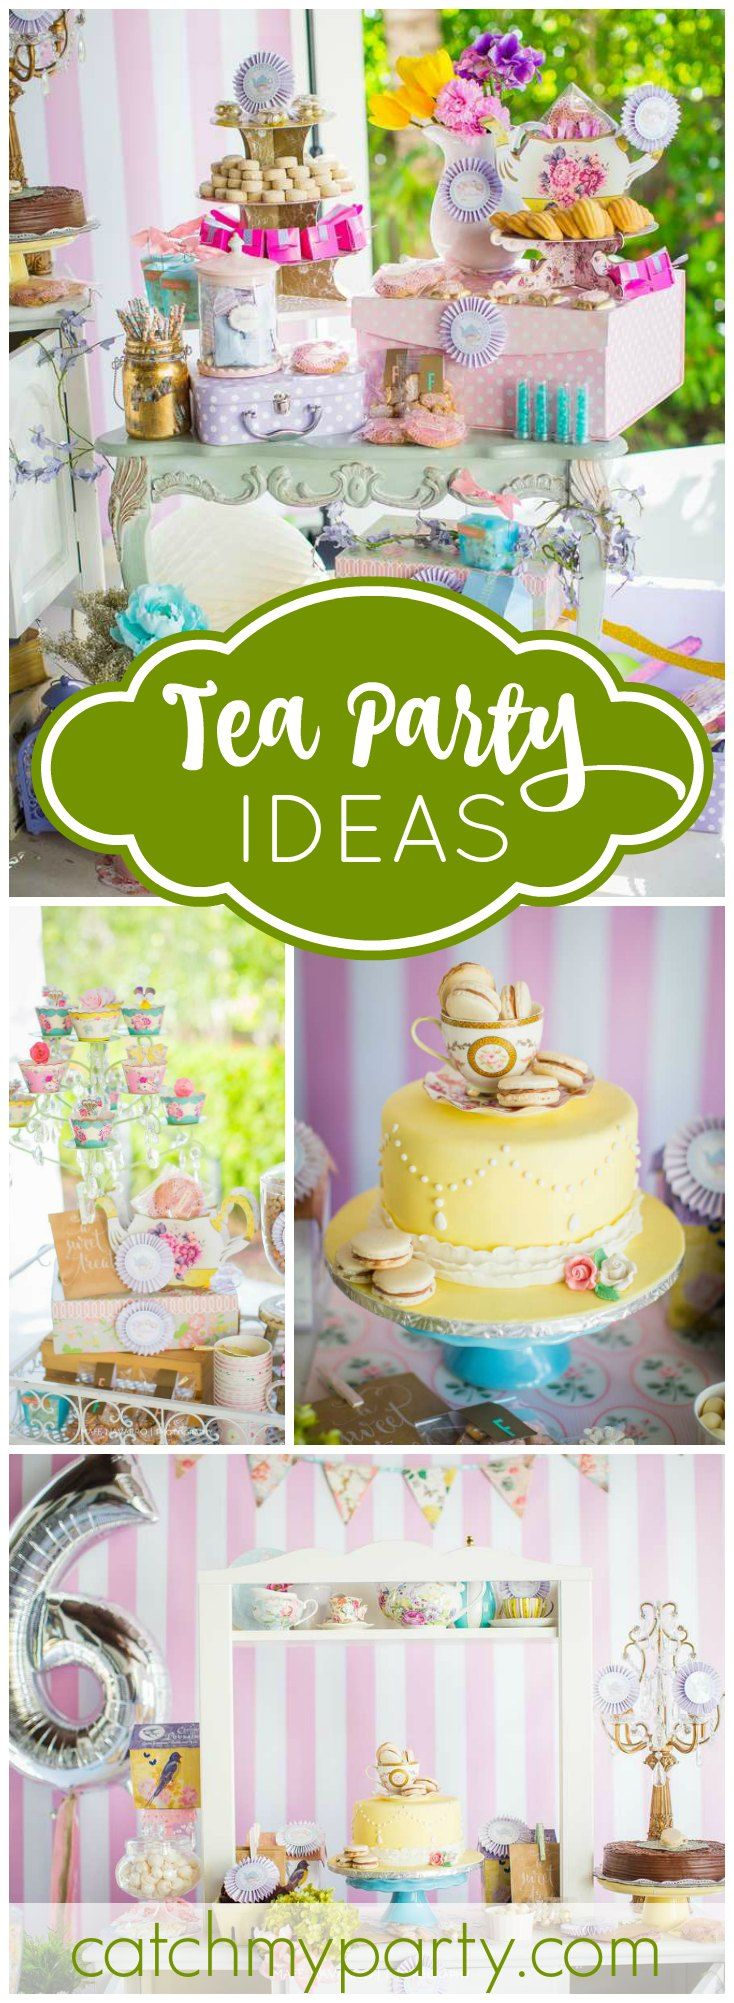 119 best images about Afternoon Tea on Pinterest | Tea trolley ...